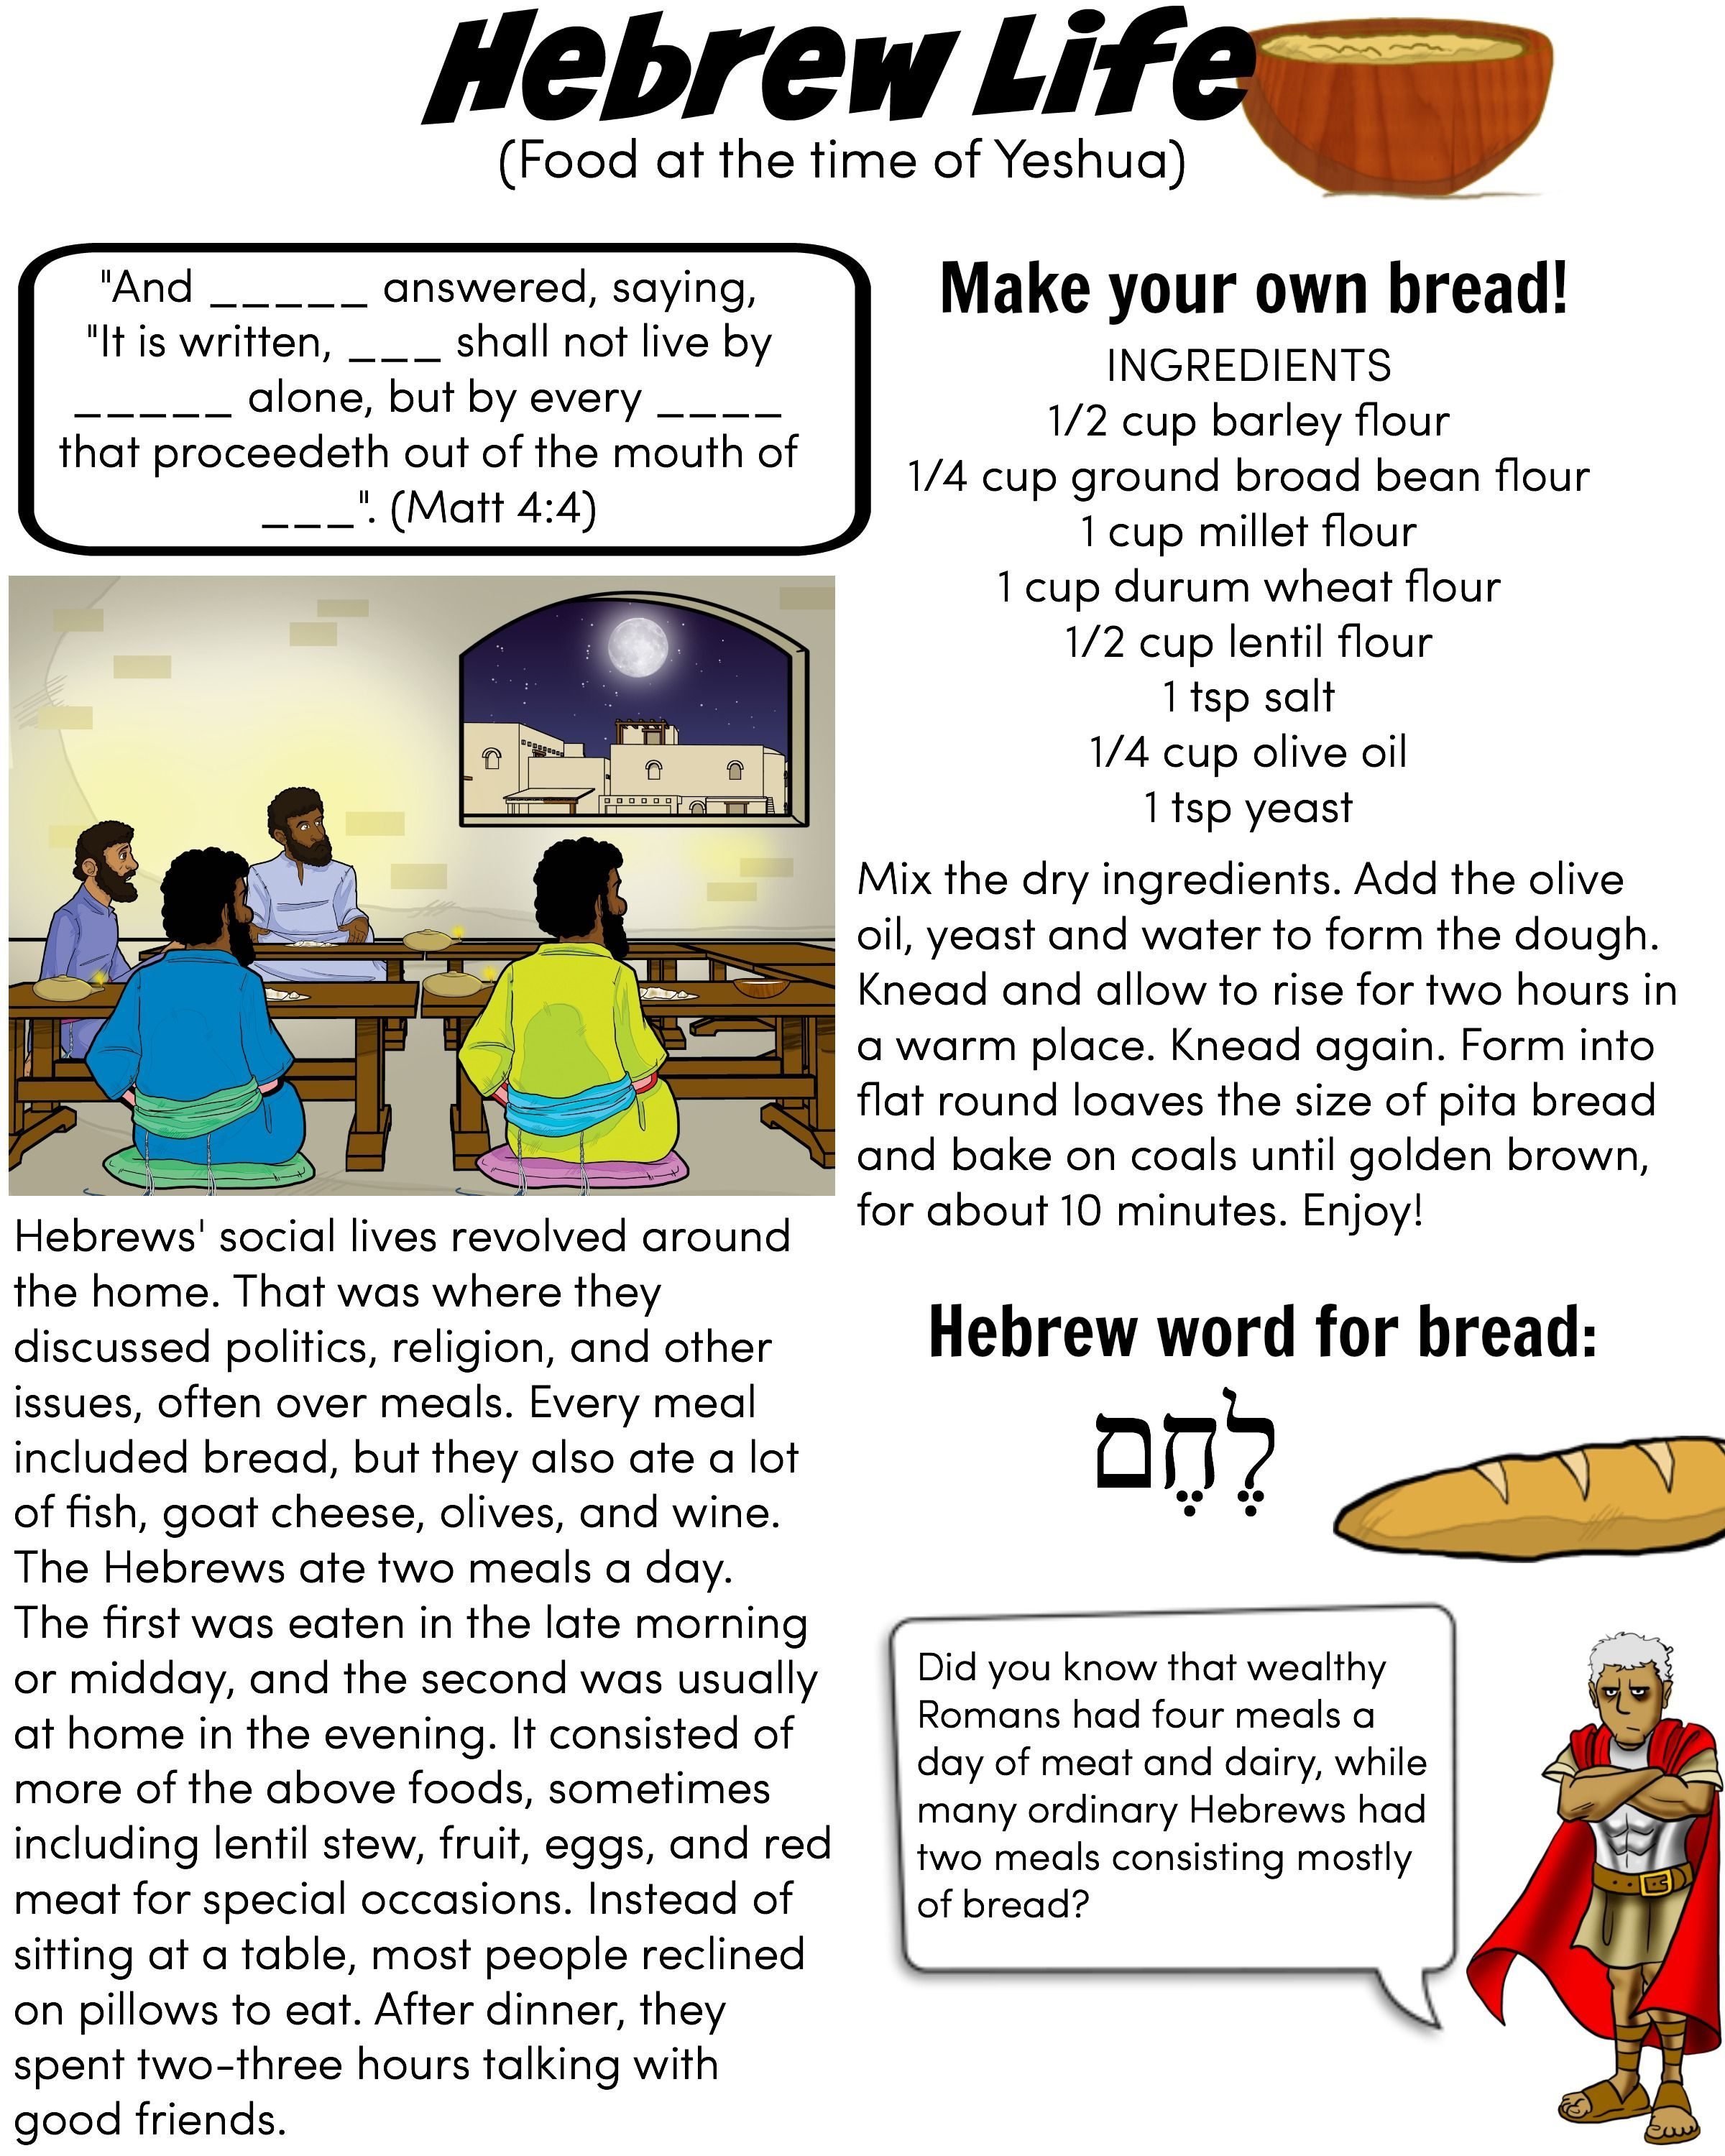 Hebrew Life Food At The Time Of Yeshua Jesus Make Your